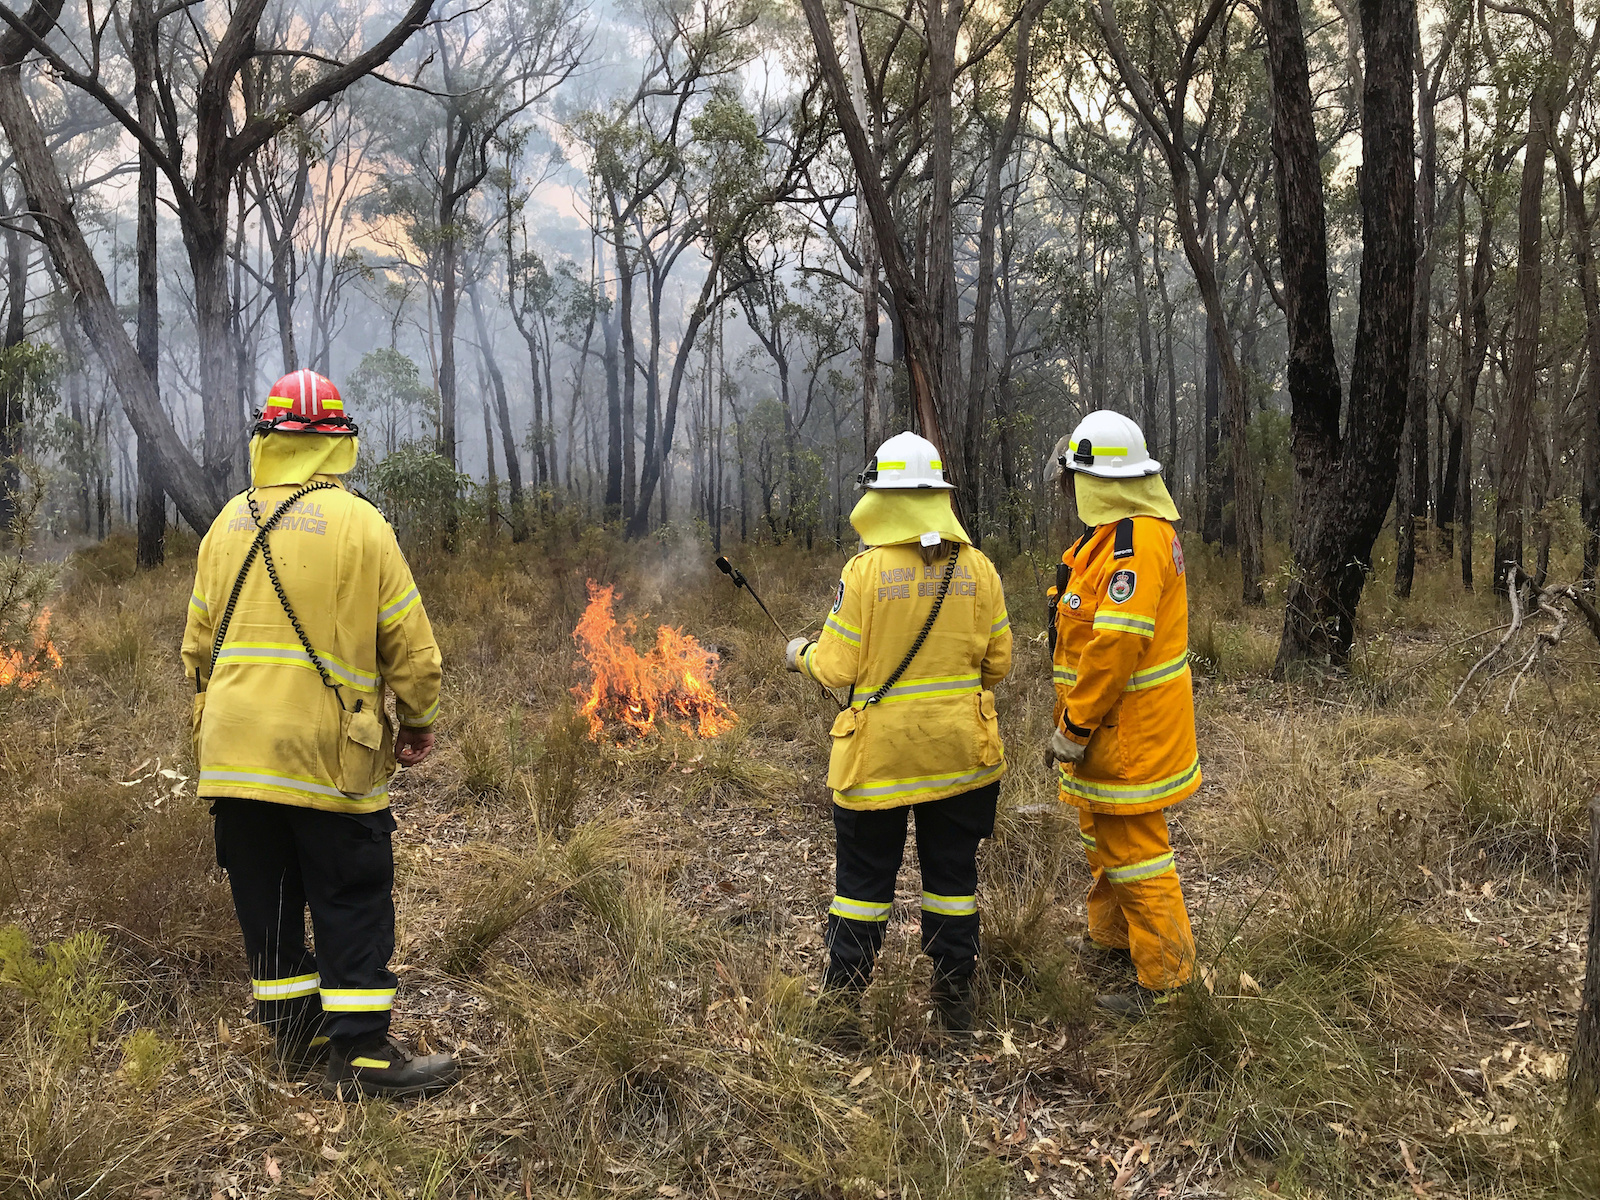 NSW Rural Fire Service observers during back burnning operations near Picton, Australia